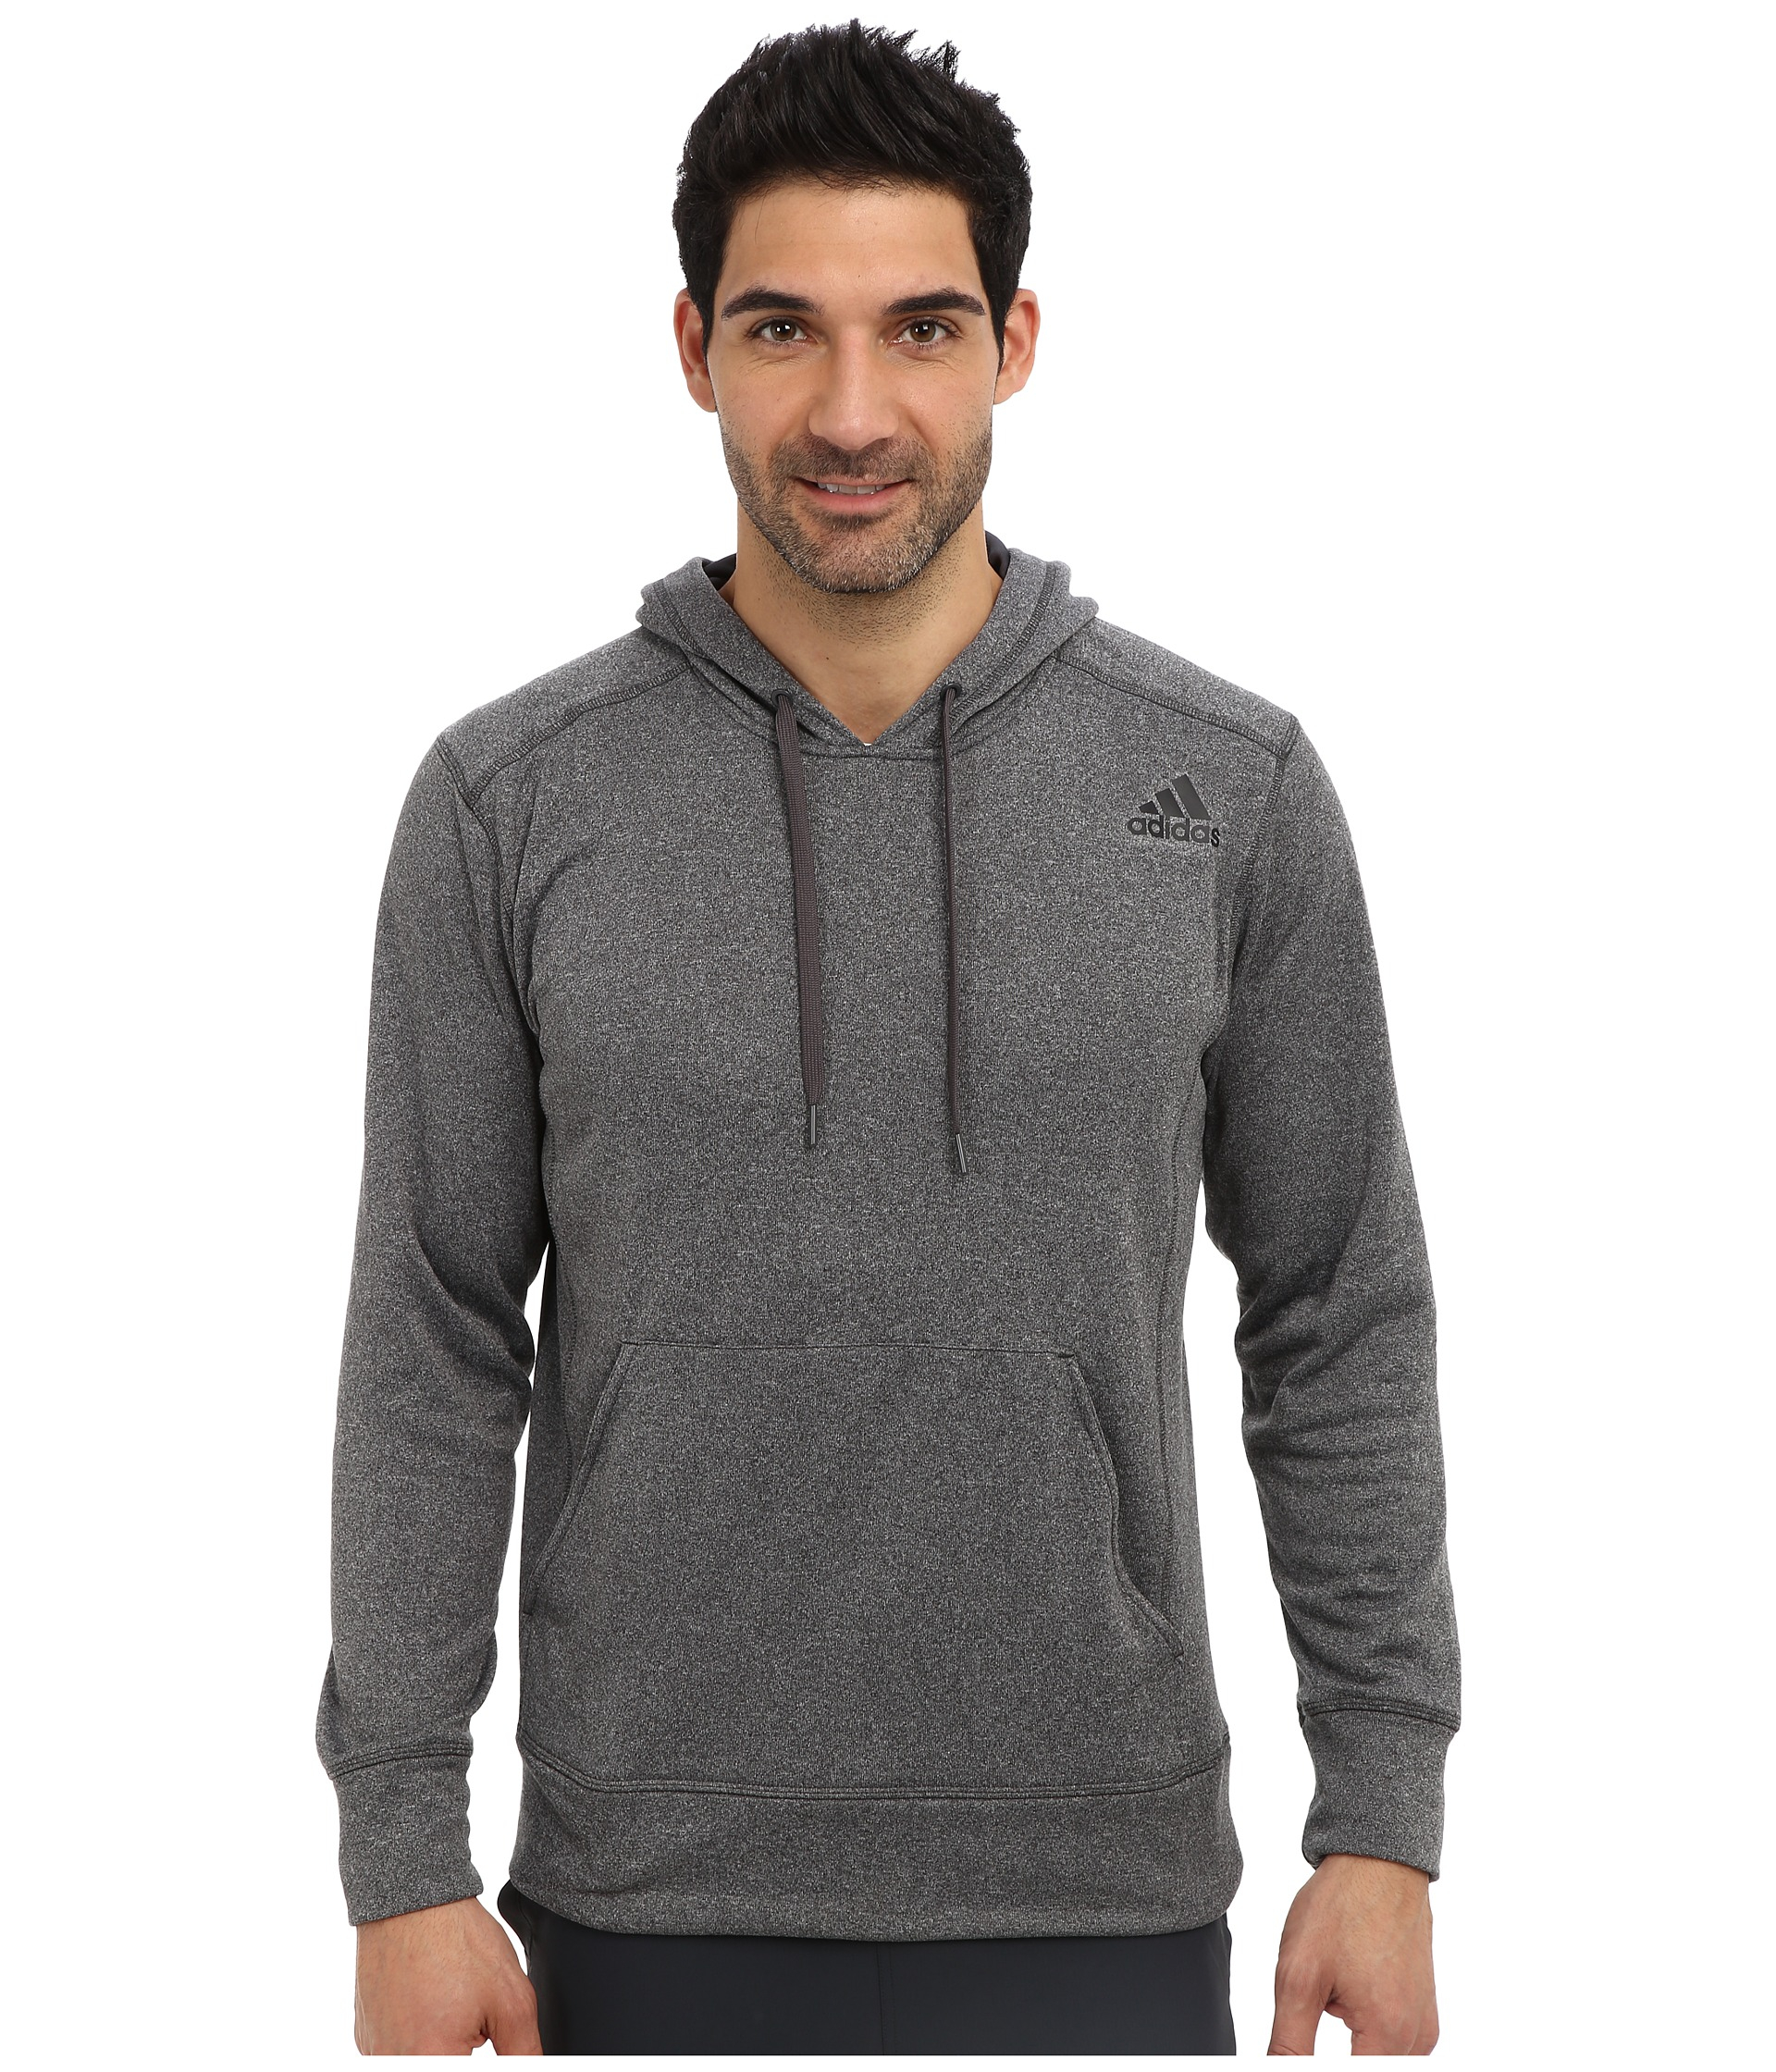 8c662b2afd10 Lyst - adidas Ultimate Fleece Pullover Hoodie in Gray for Men